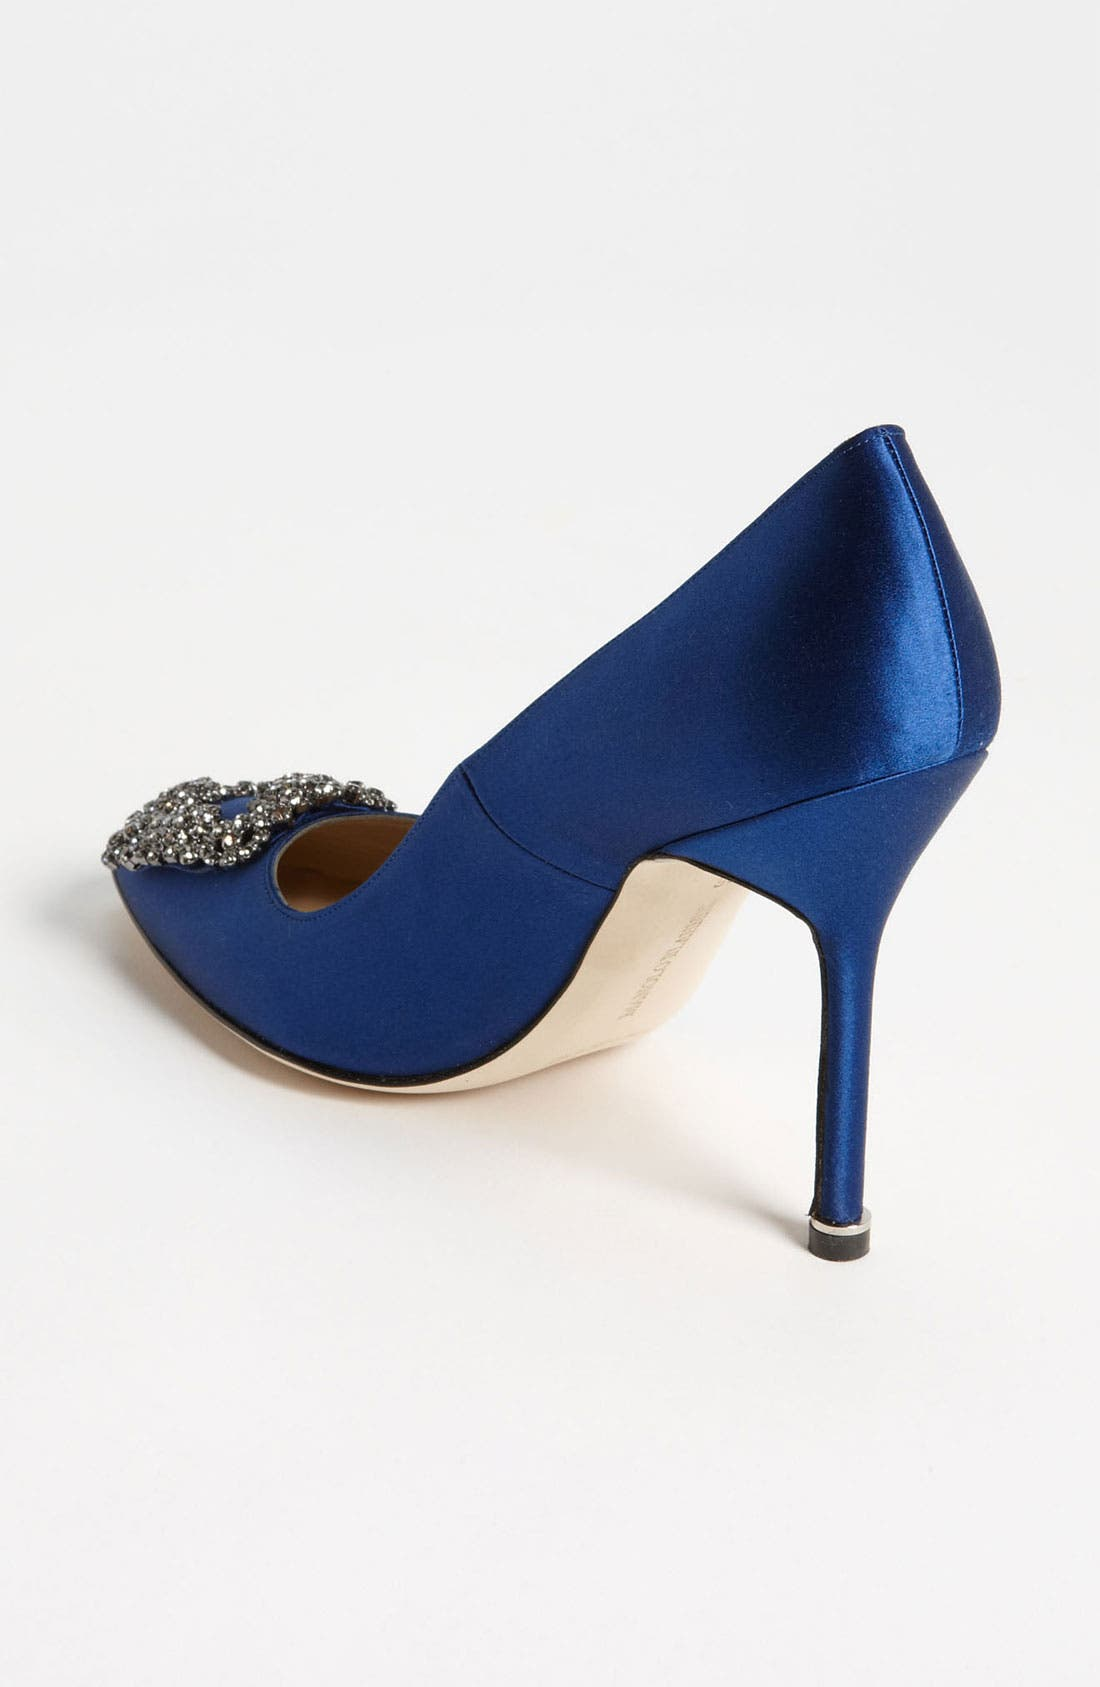 'Hangisi' Jewel Pump,                             Alternate thumbnail 3, color,                             BLUE SATIN